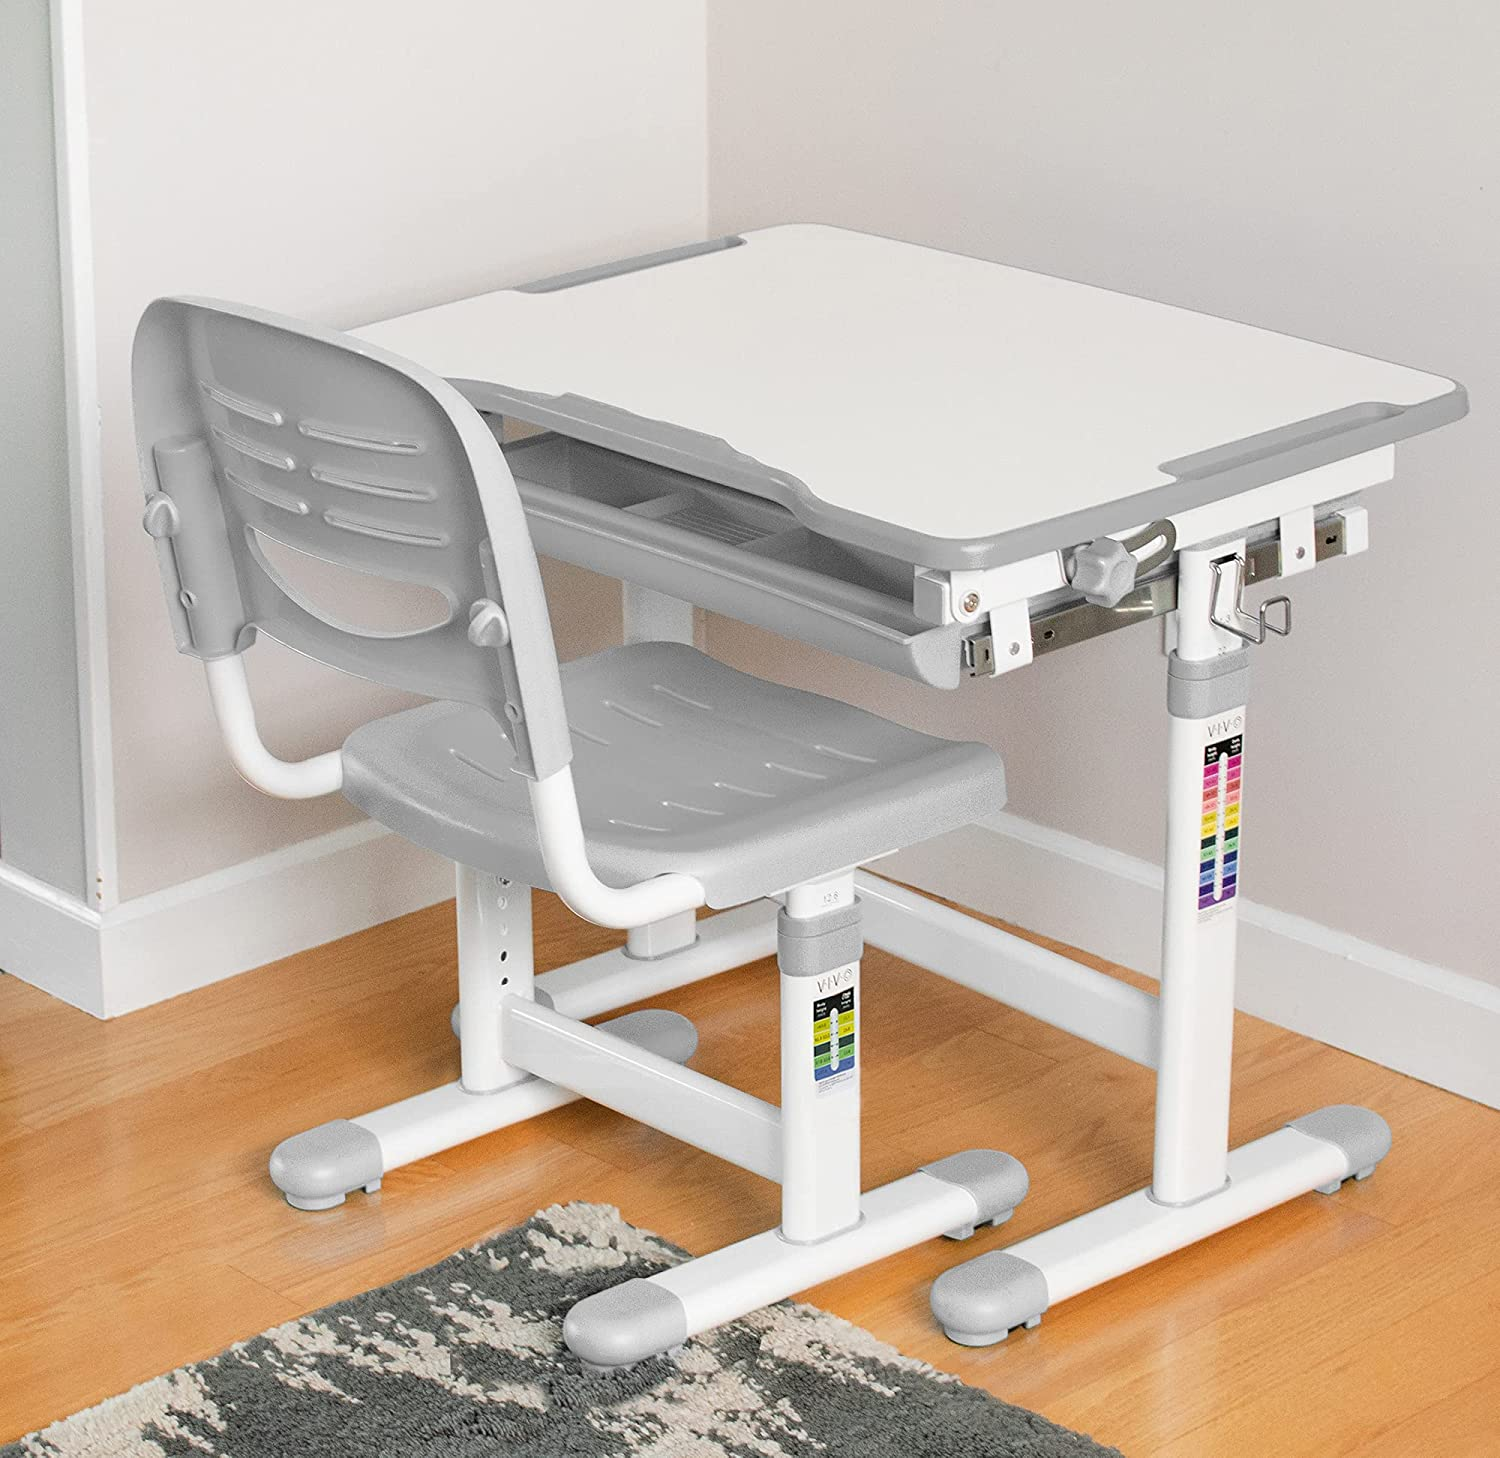 Here is a photo of an adjustable standing desk.